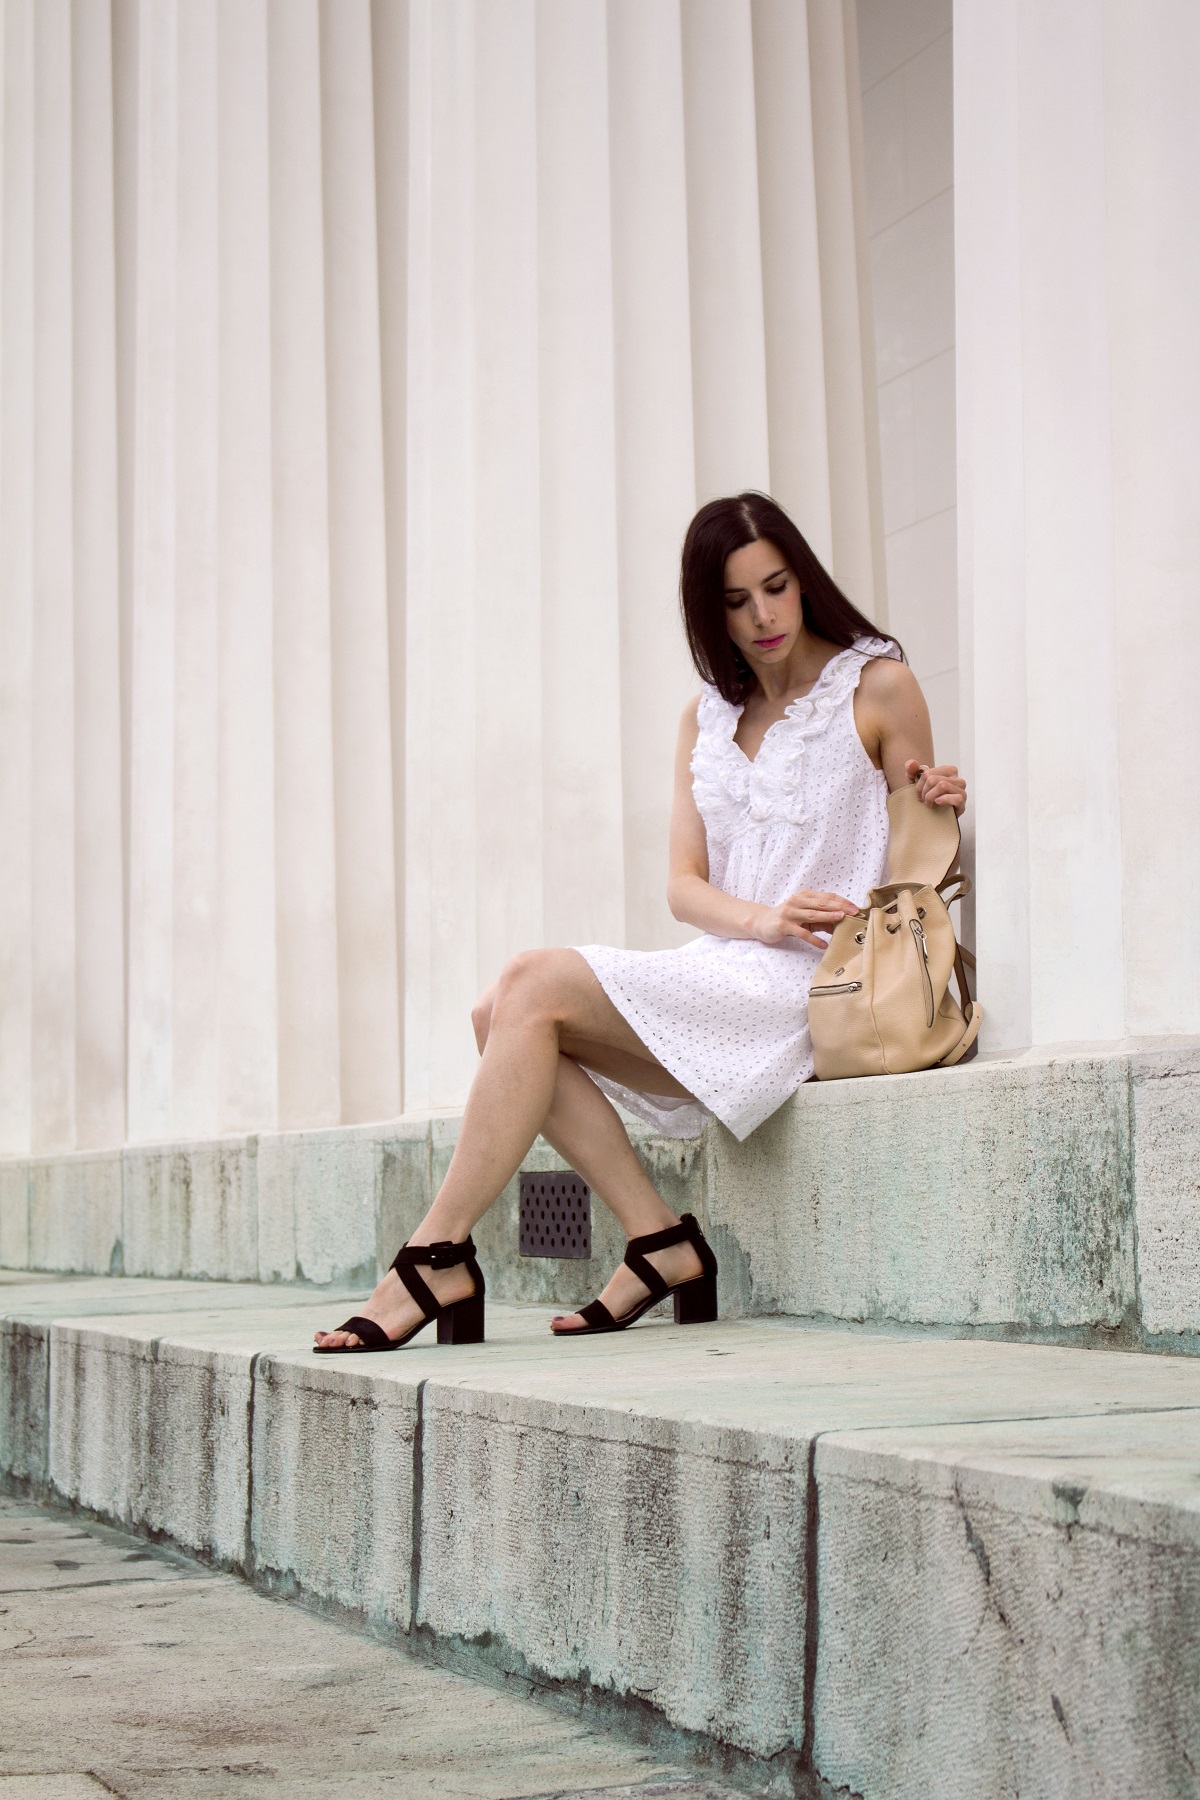 sitting on the stairs in white eyelet dress